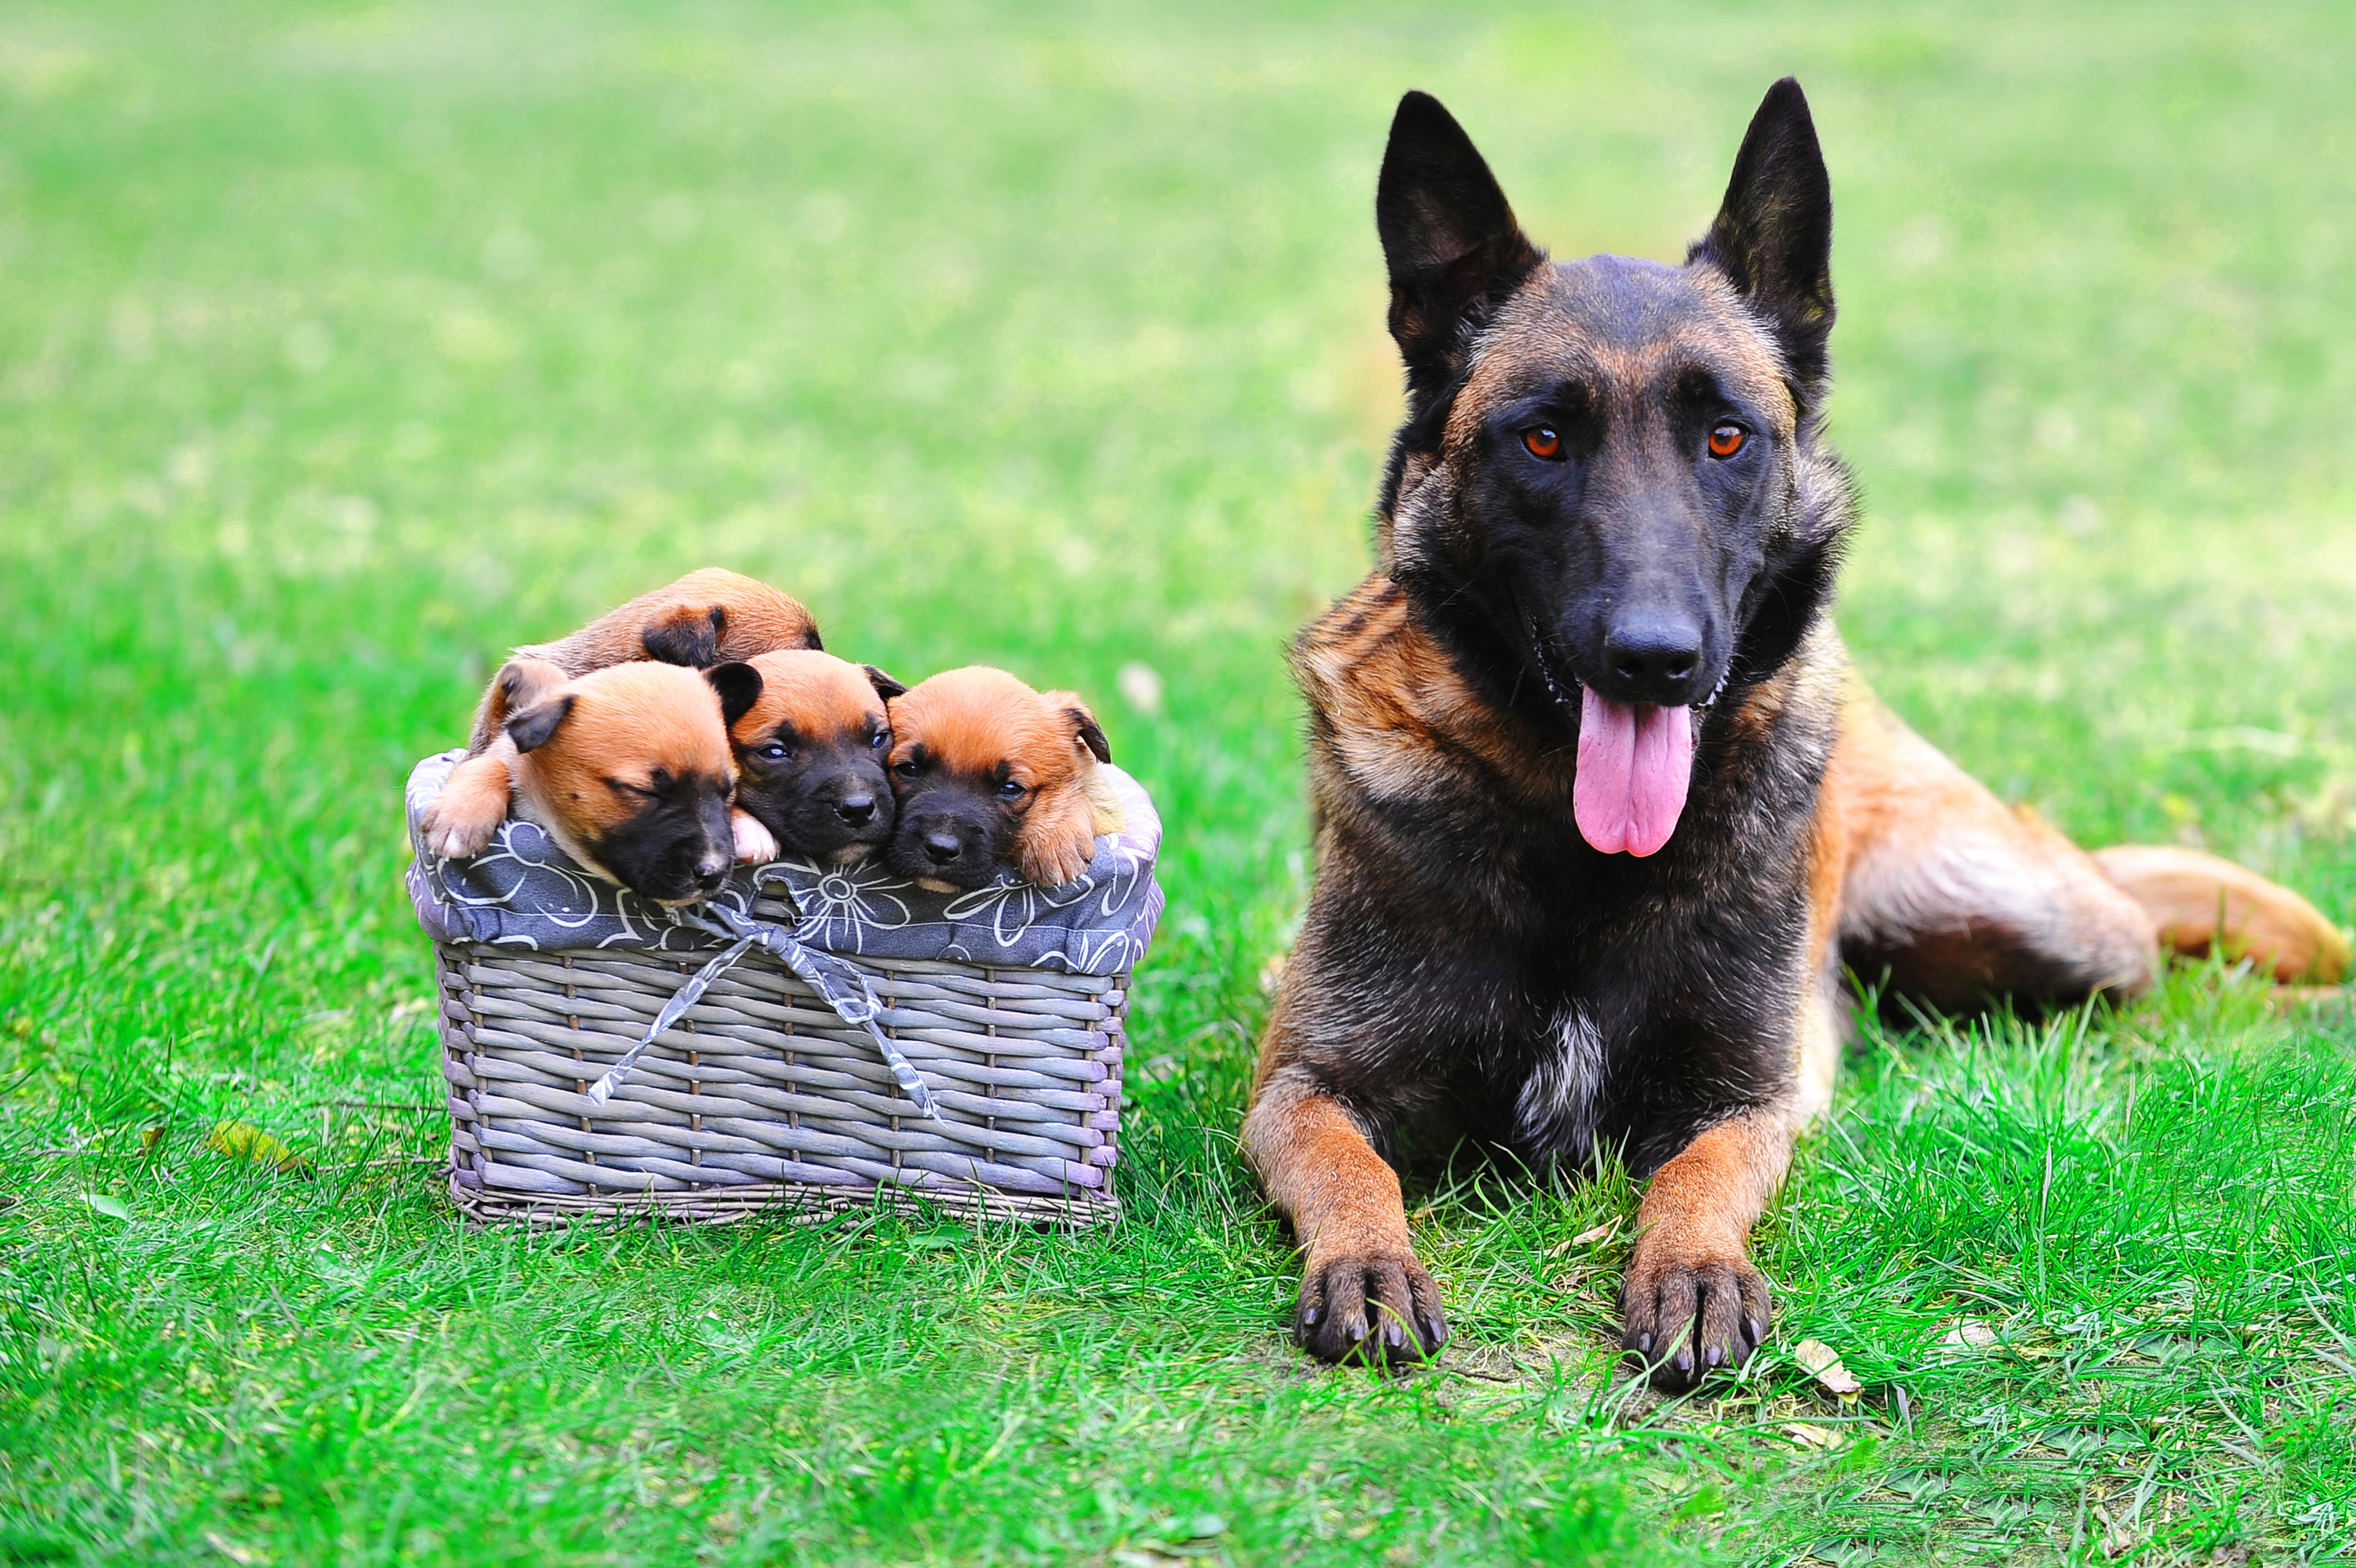 bigstock-Dog-With-Puppies-120625430